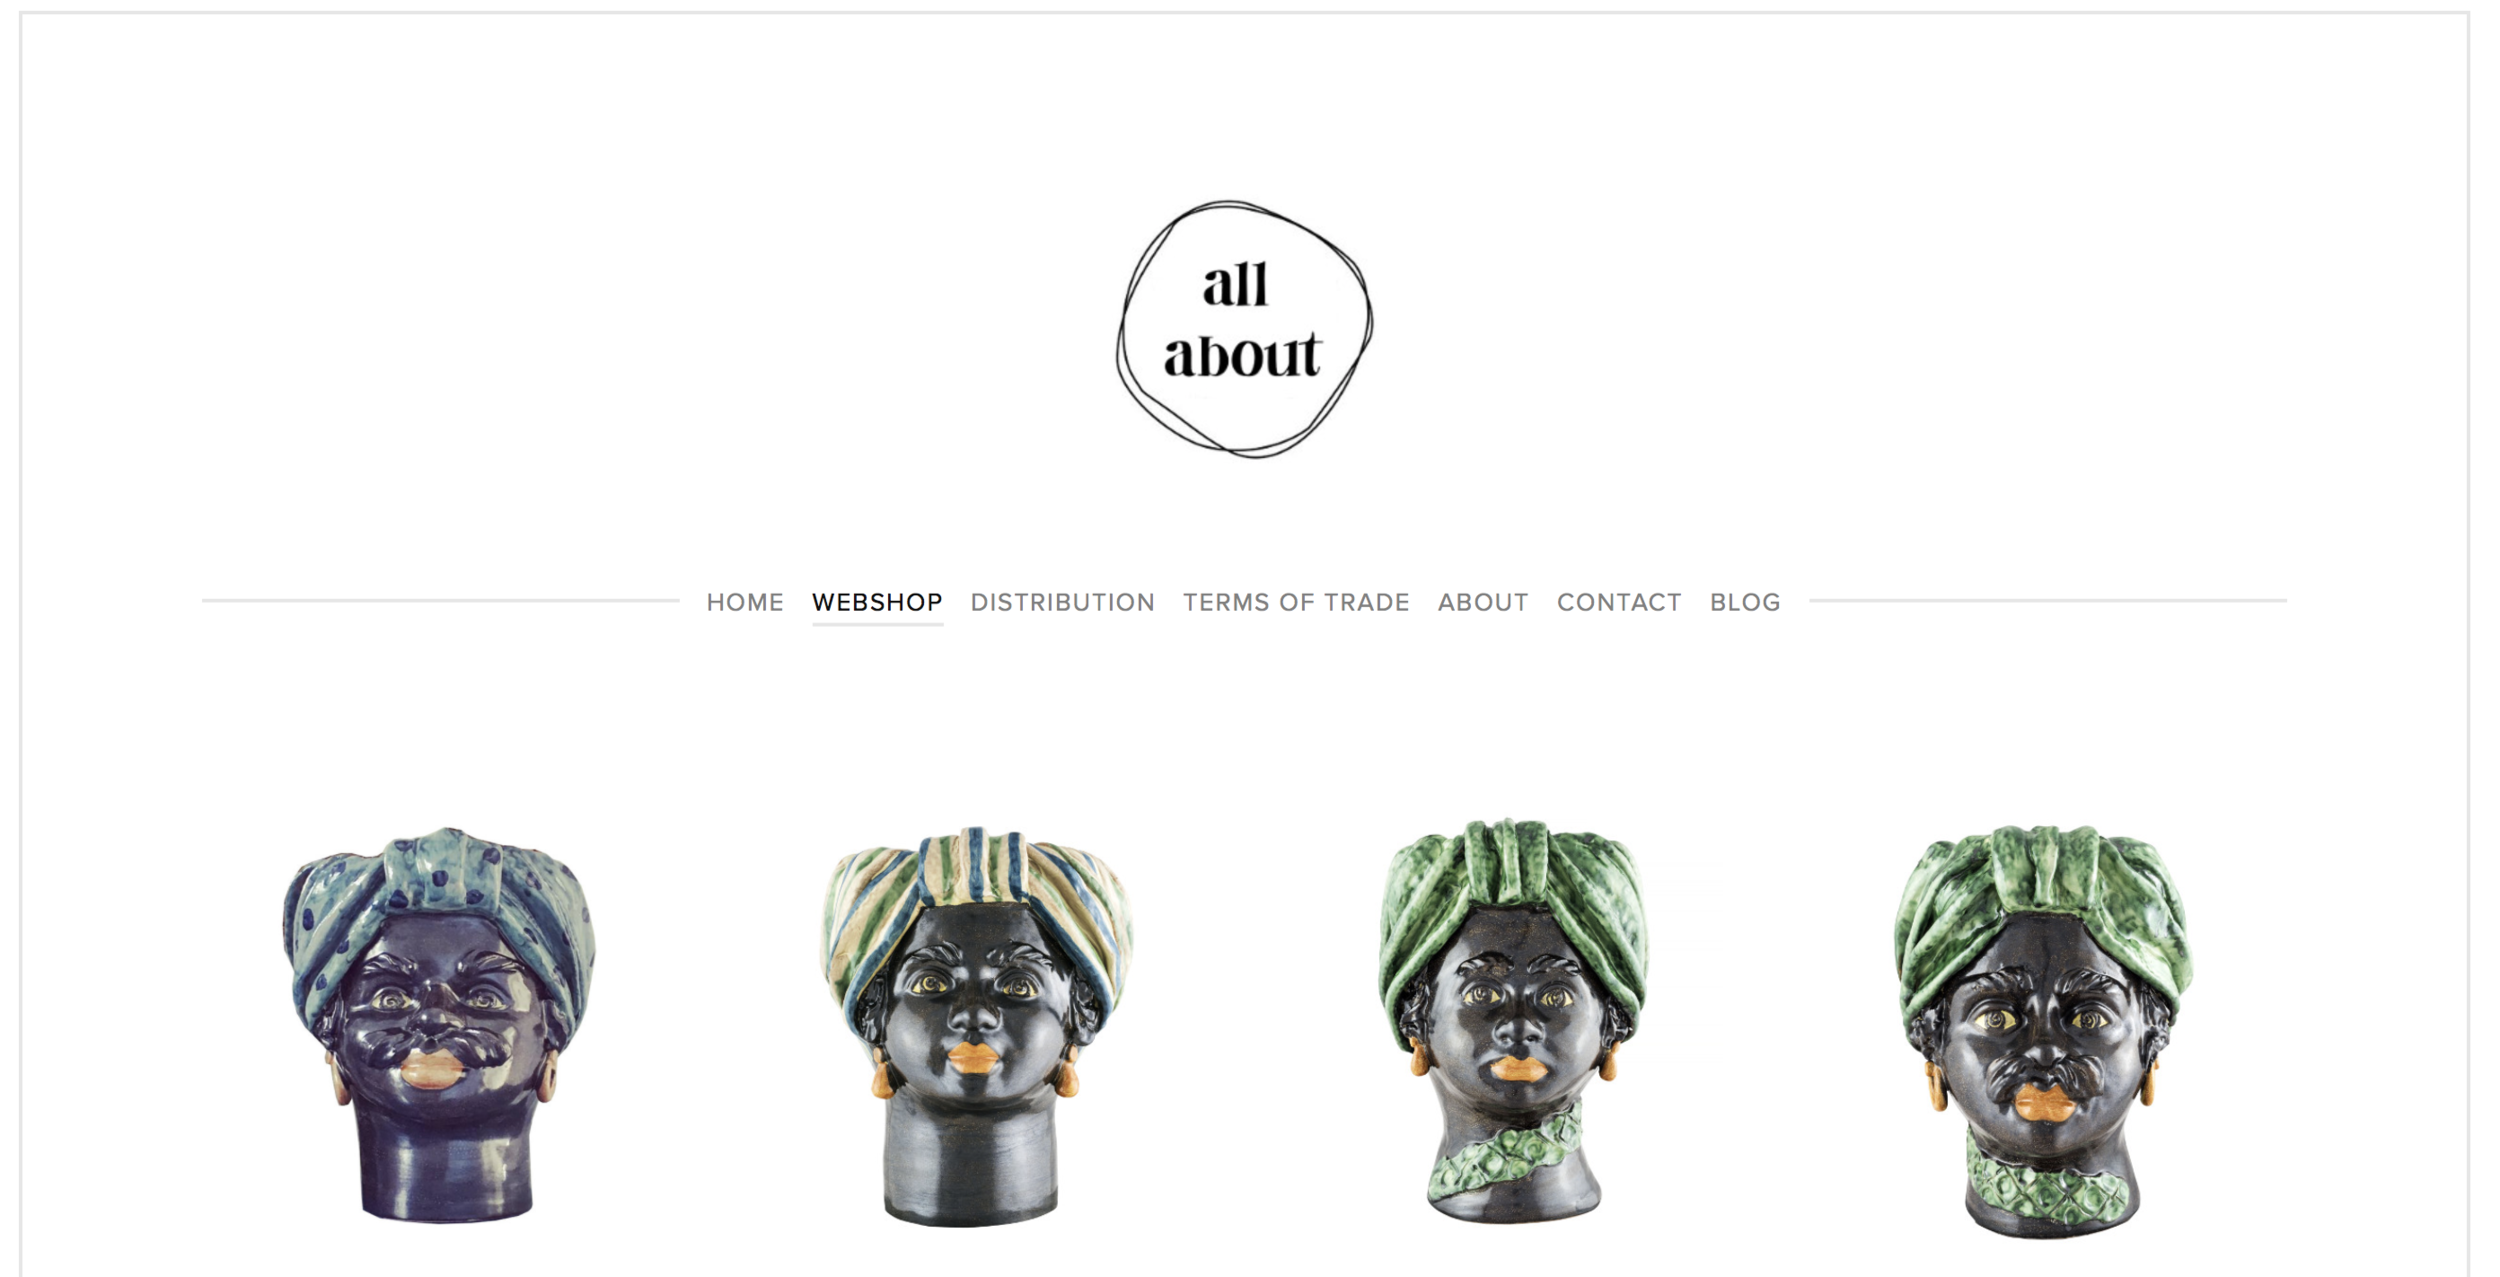 We are very happy to announce that our  webshop  is now official open. You will find a lot of beautiful, cool and handcrafted headvases by Giacomo Alessi.  For PR, WHOLESALE and PRIVATE enquiries in Scandinavia please feel free to send us an e-mail to info @ allabout . dk  Thanks!  Take a look her:  WEBSHOP      www.allaboutagency.com